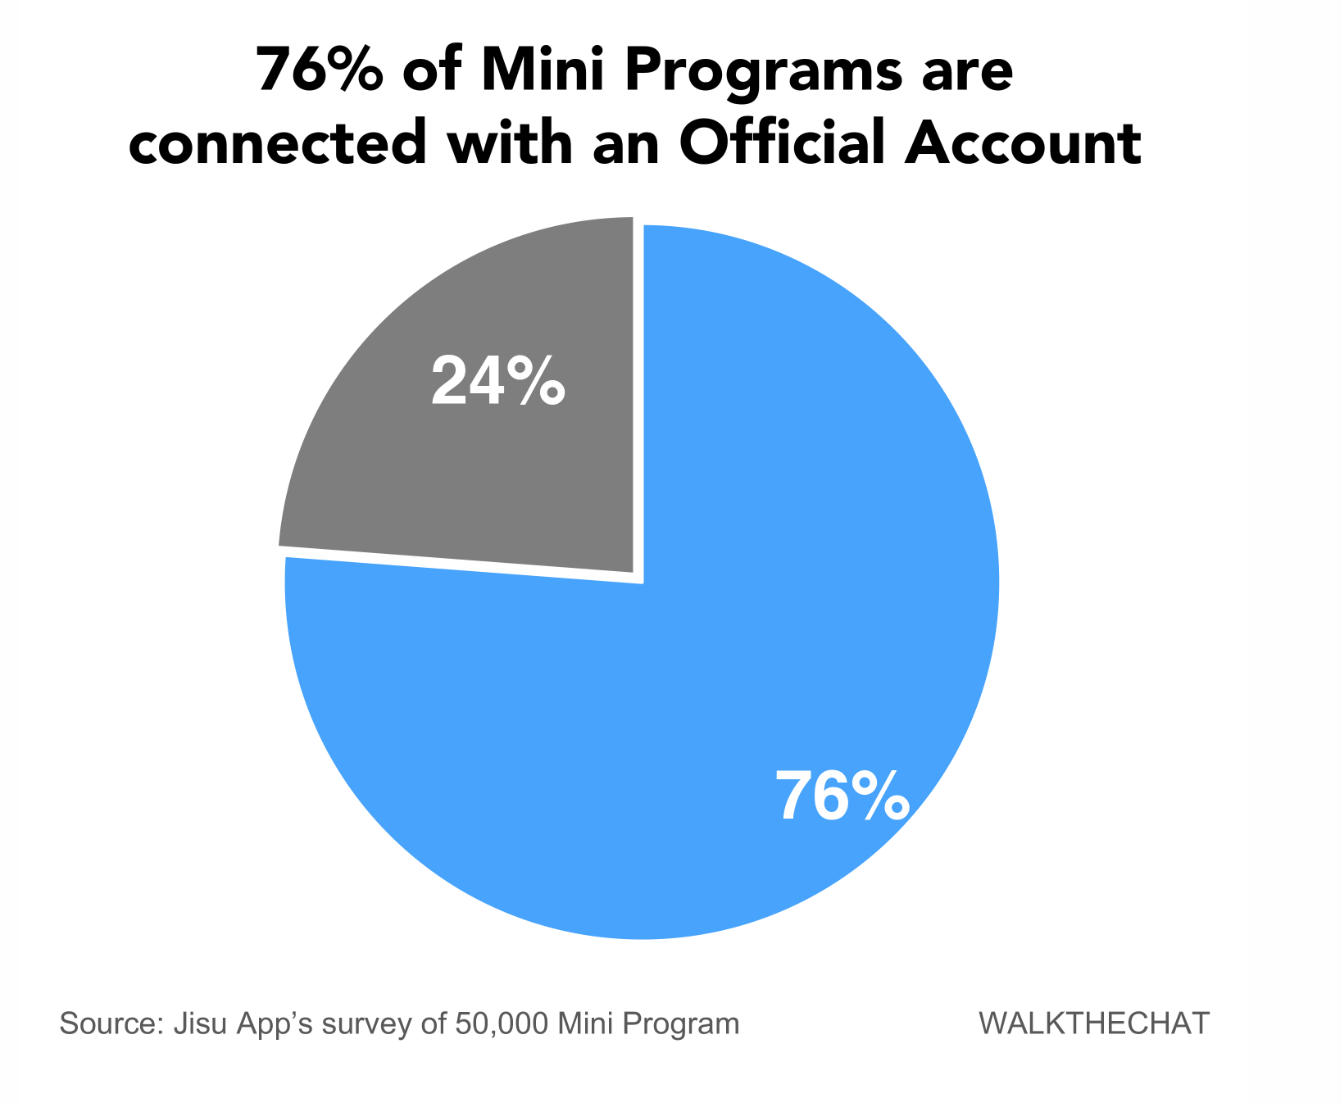 Mini programs connected with an official account